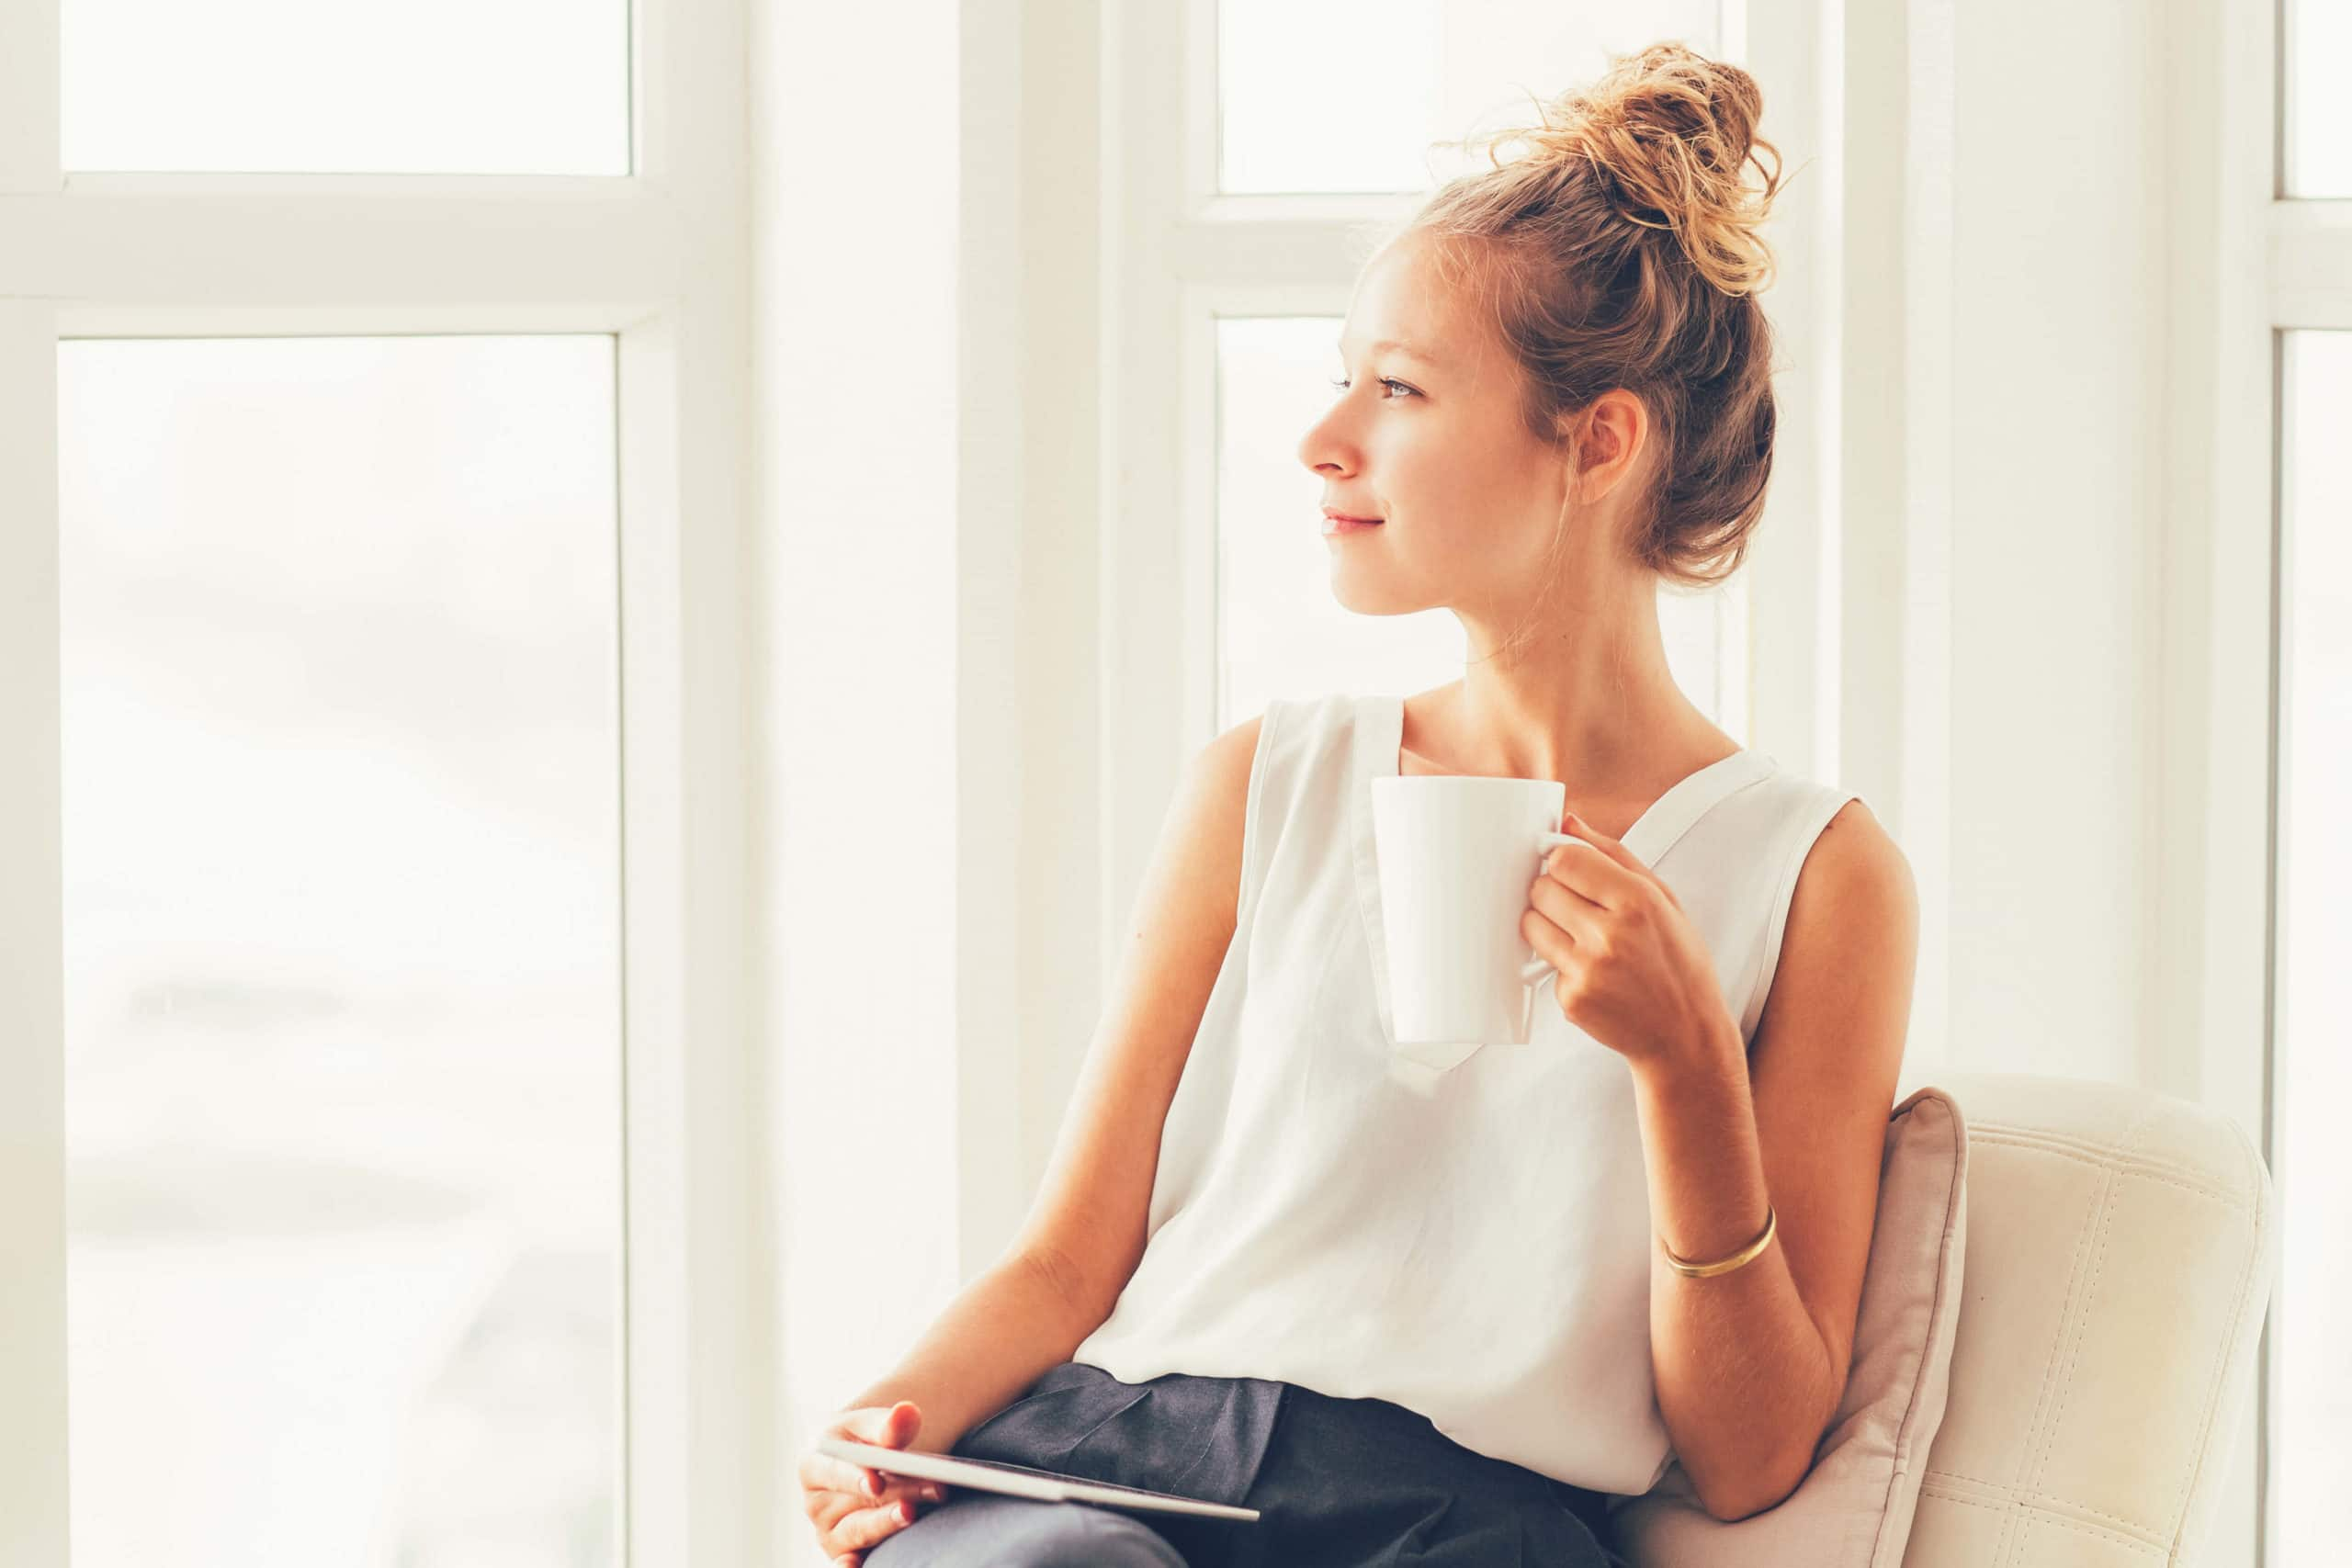 smiling woman sitting on cozy chair with mug near large windows